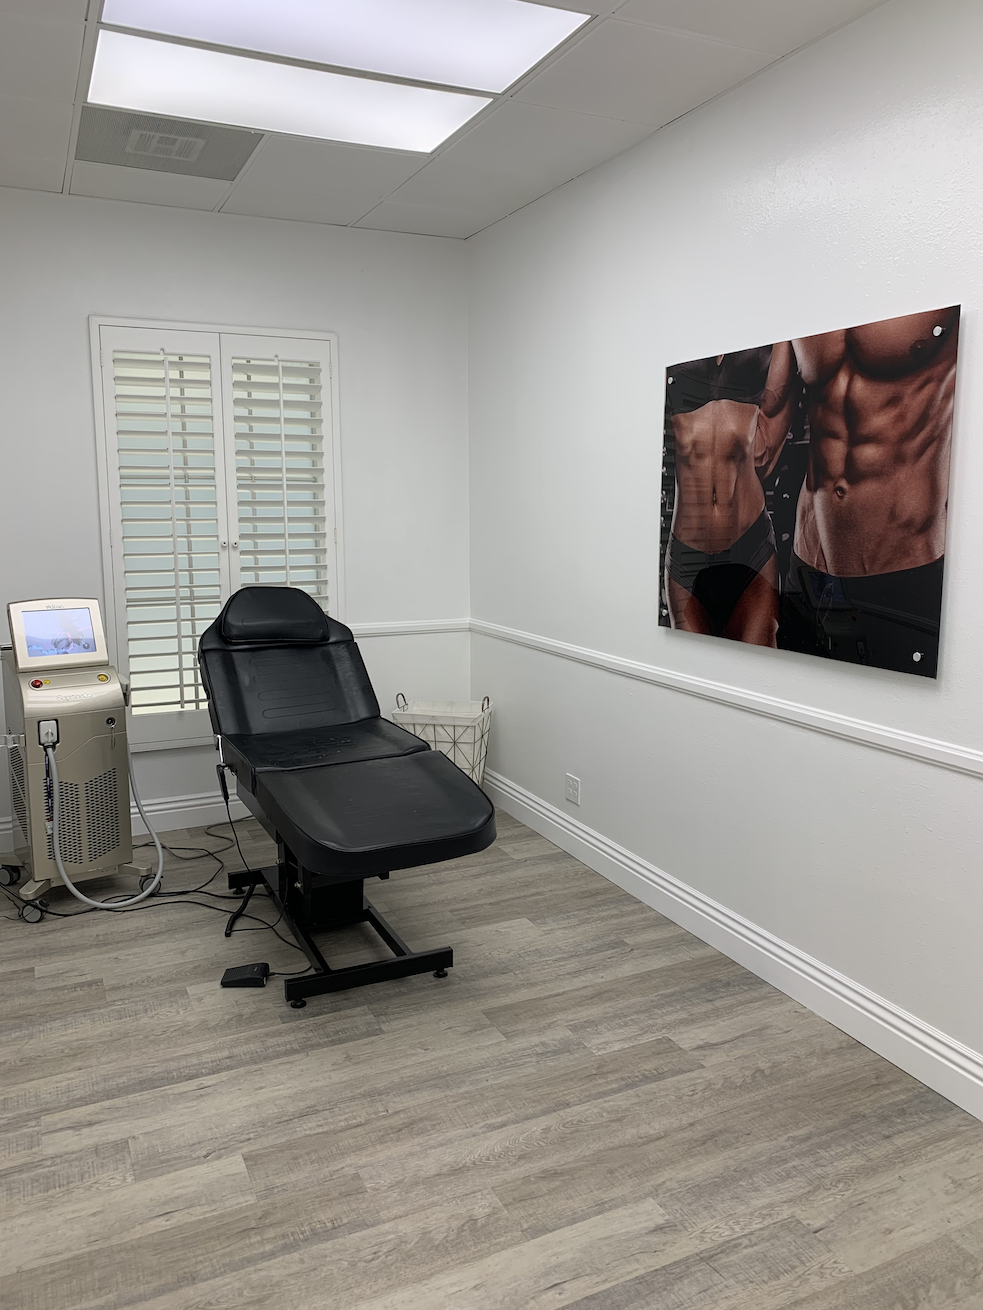 coolsculpting in whittier best coolsculpting - treatment room 2